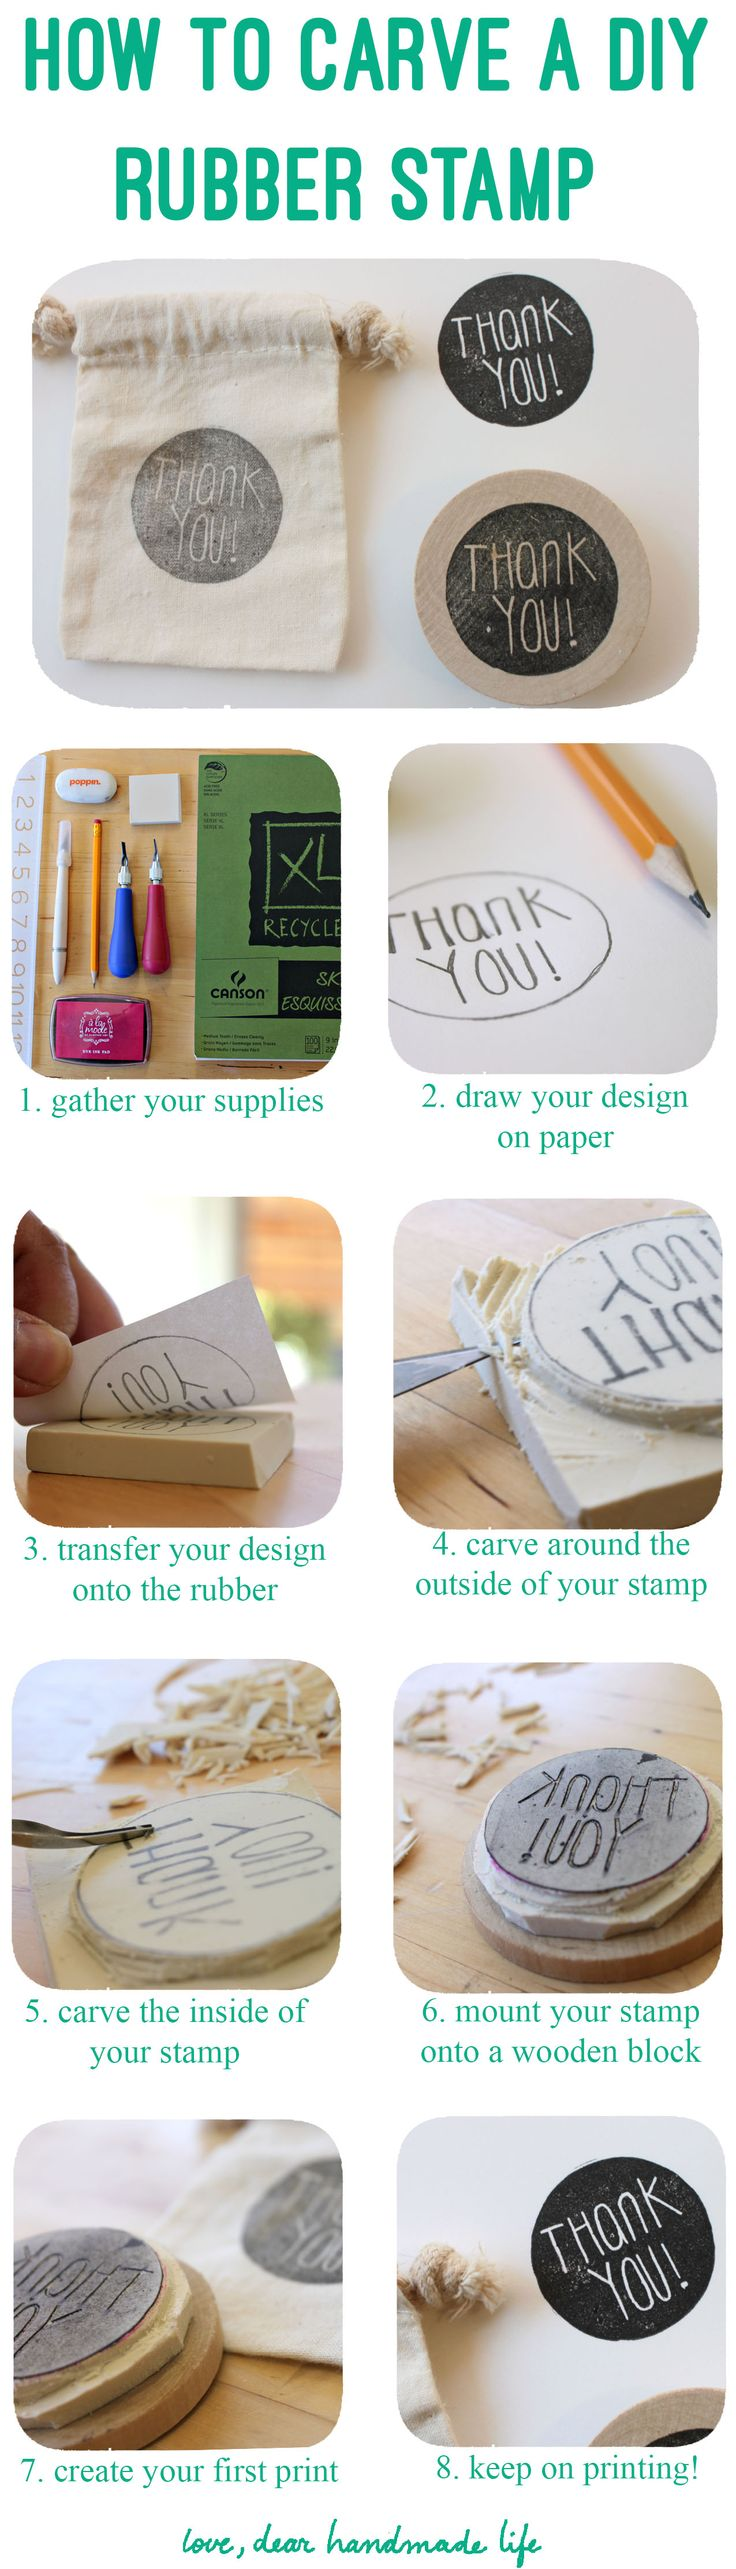 Stempel Herstellen How To Make A Diy Carved Rubber Stamp Crafty 2 The Core Diy